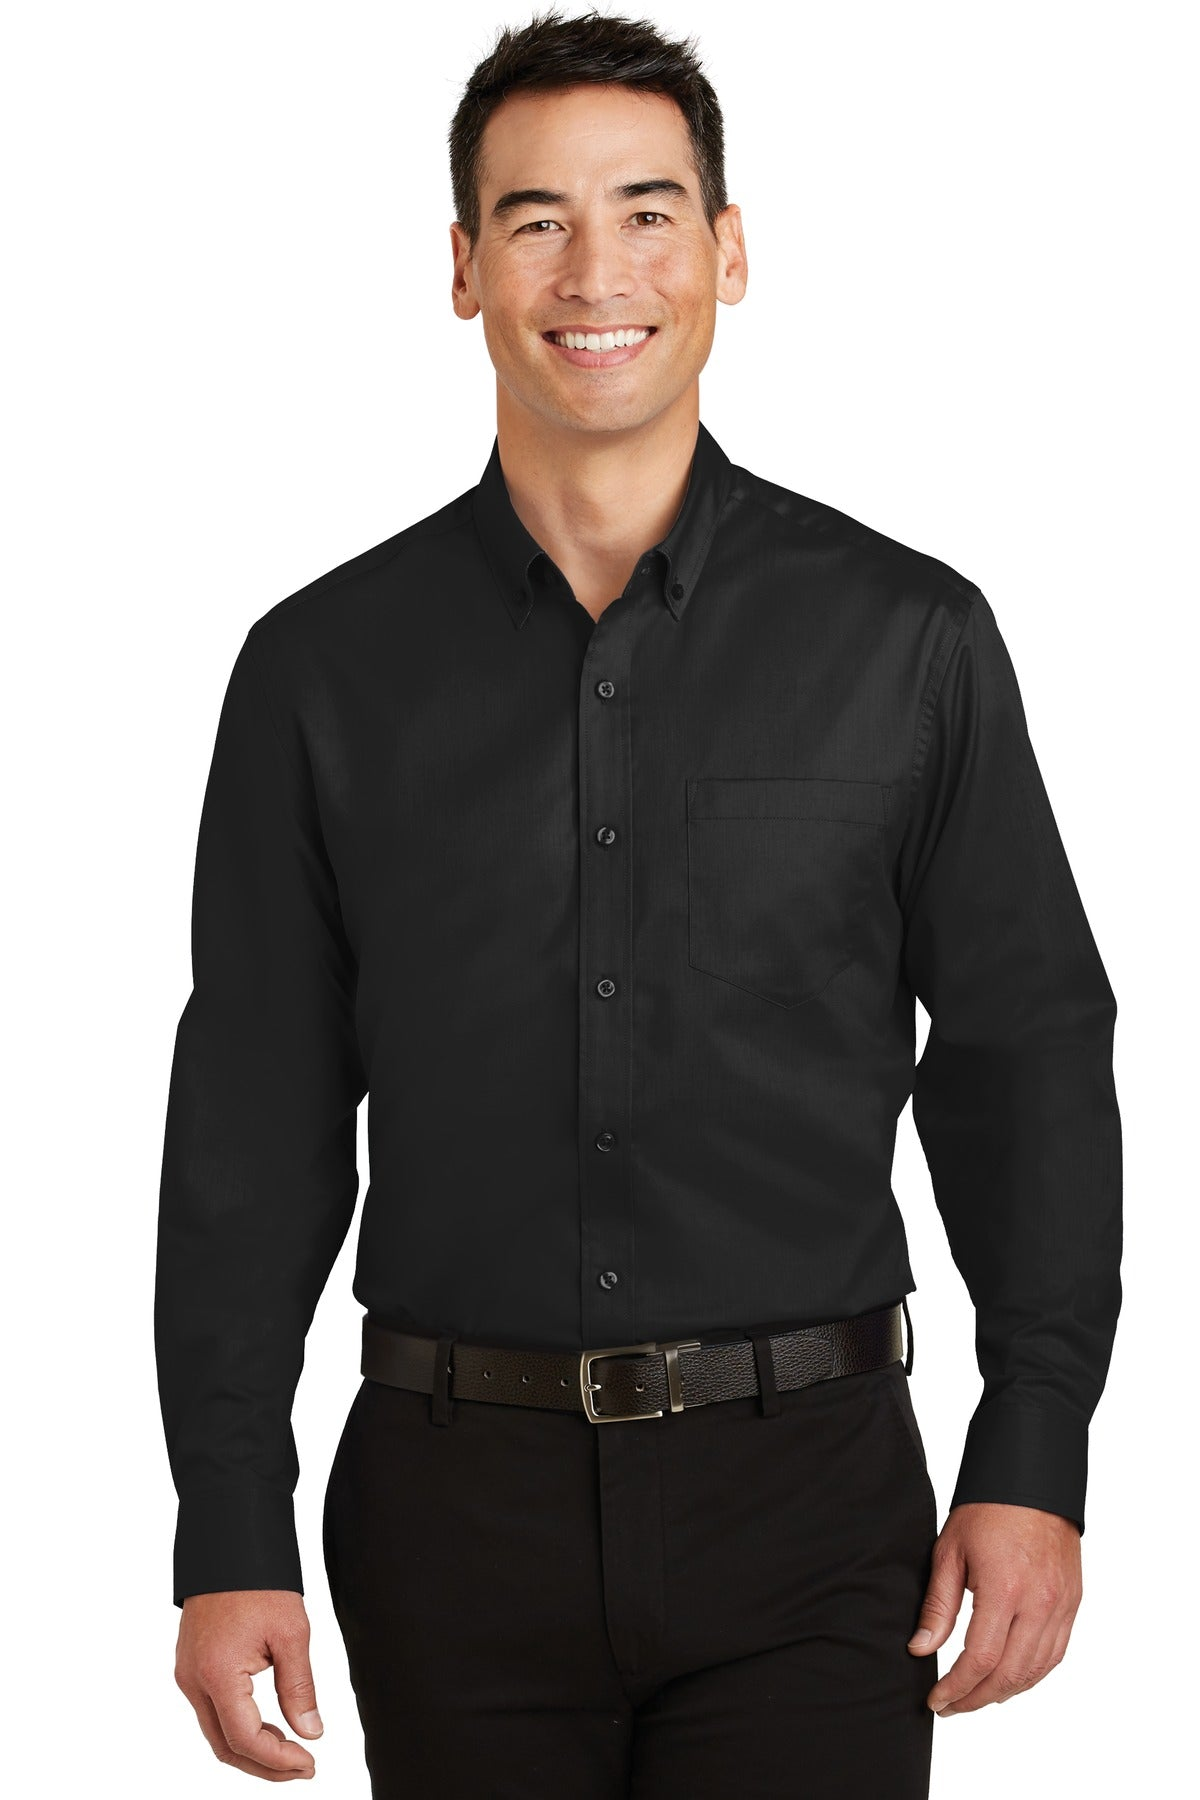 Burgundy Port Authority Tall Silk Touch Polo with Pocket.